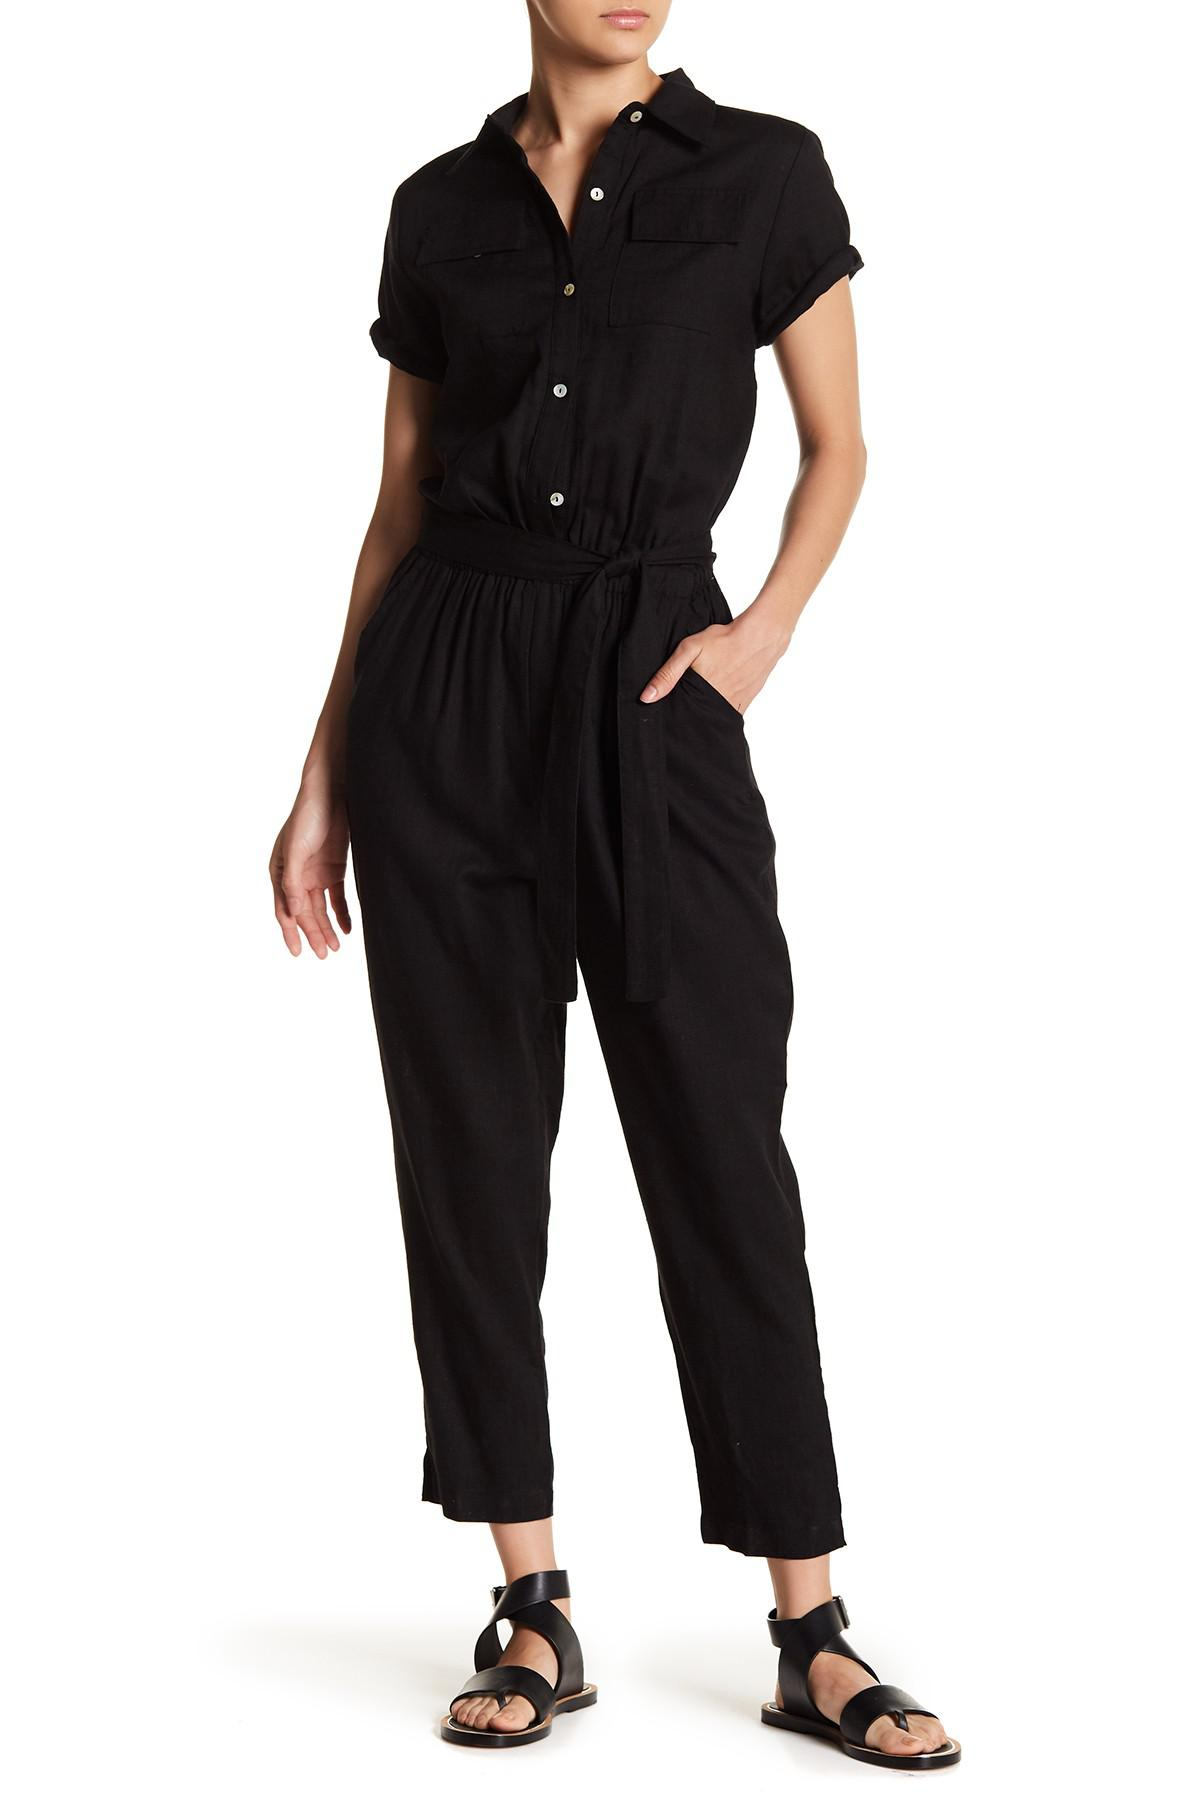 a4b97039726e Lyst - Fate Short Sleeve Jumpsuit in Black